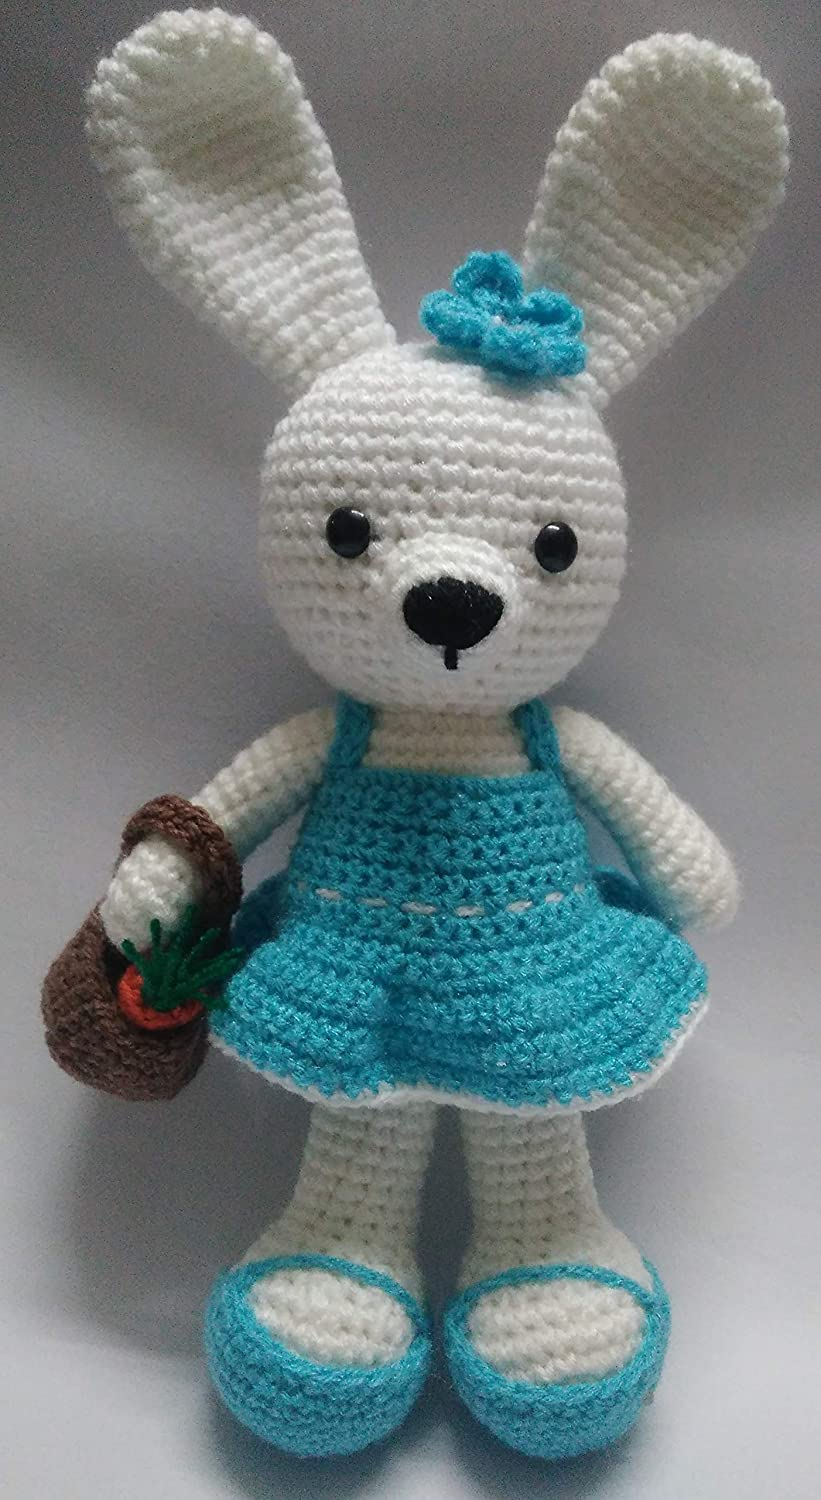 Crocheting the Baby Bean Doll: Joining Legs in One Piece (No Sew ... | 1500x821